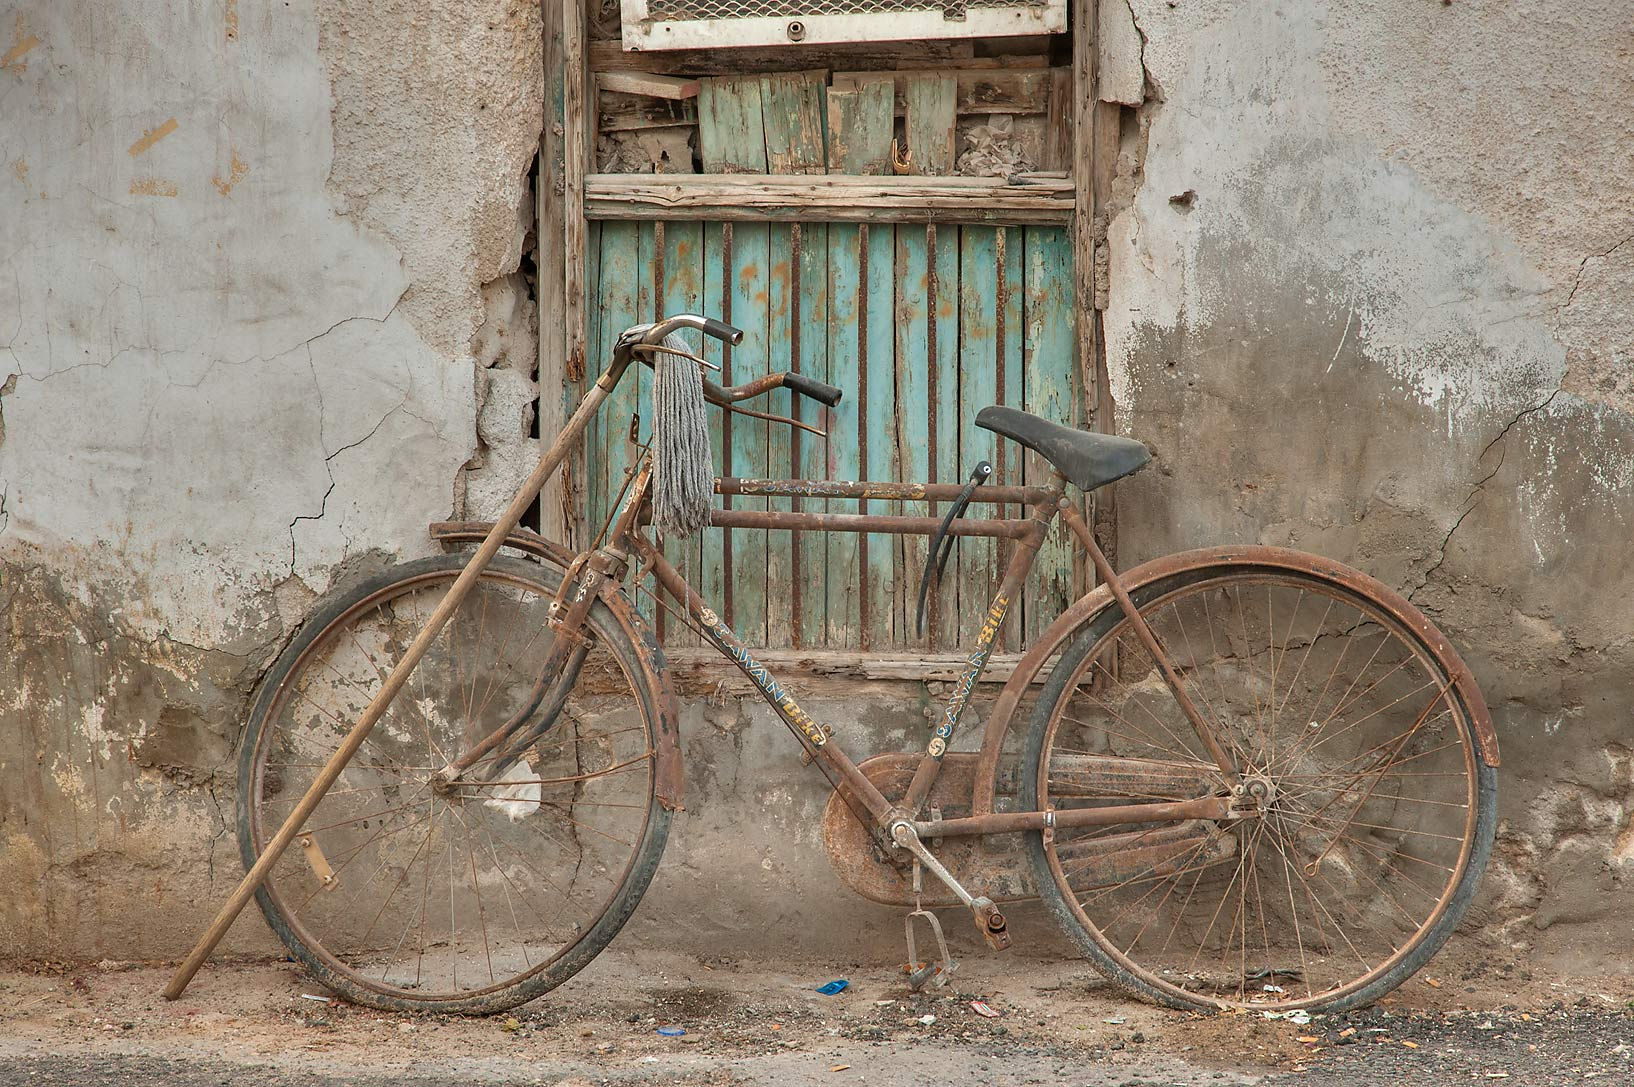 Rusty bicycle on Zurara Bin Amir St. in Al Doha Al Jadeeda area. Doha, Qatar